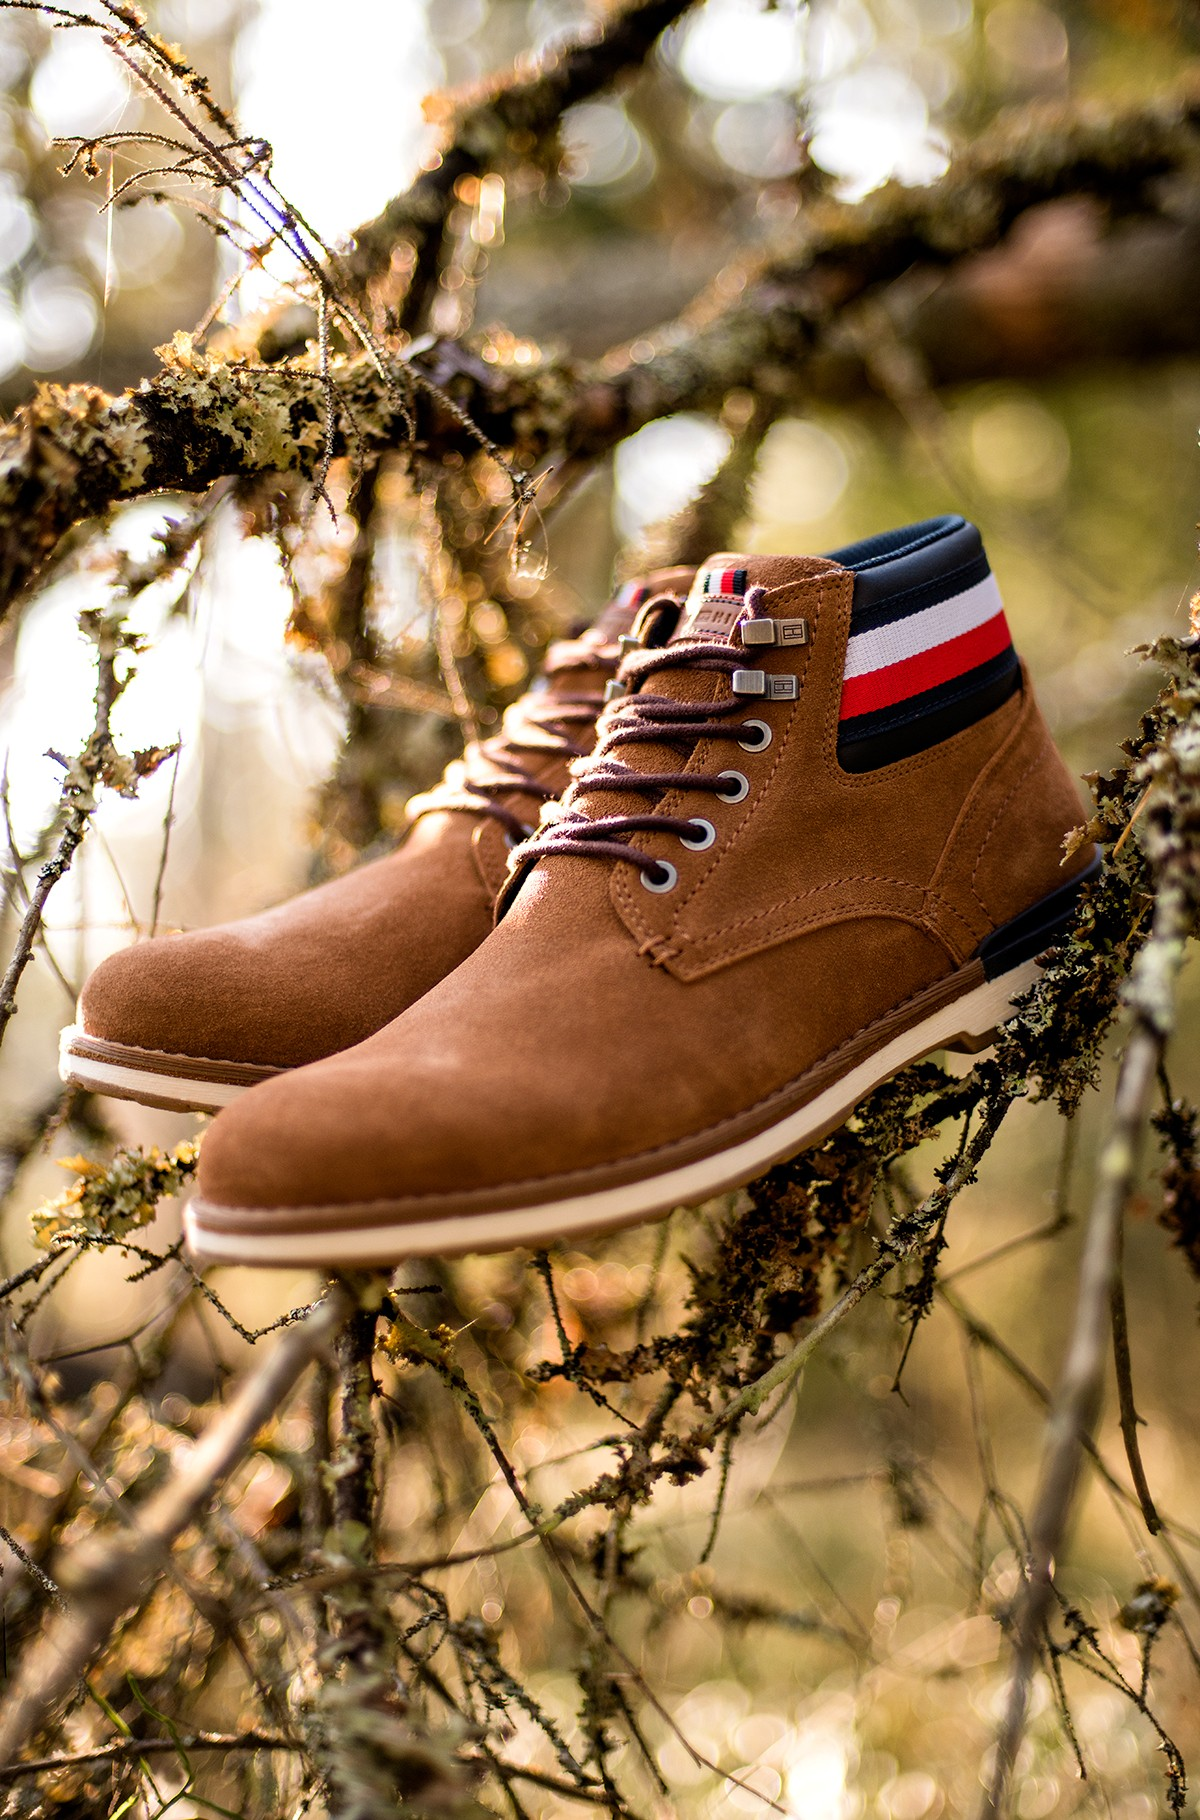 Poolsaapad OUTDOOR SUEDE HILFIGER BOOT-full-1